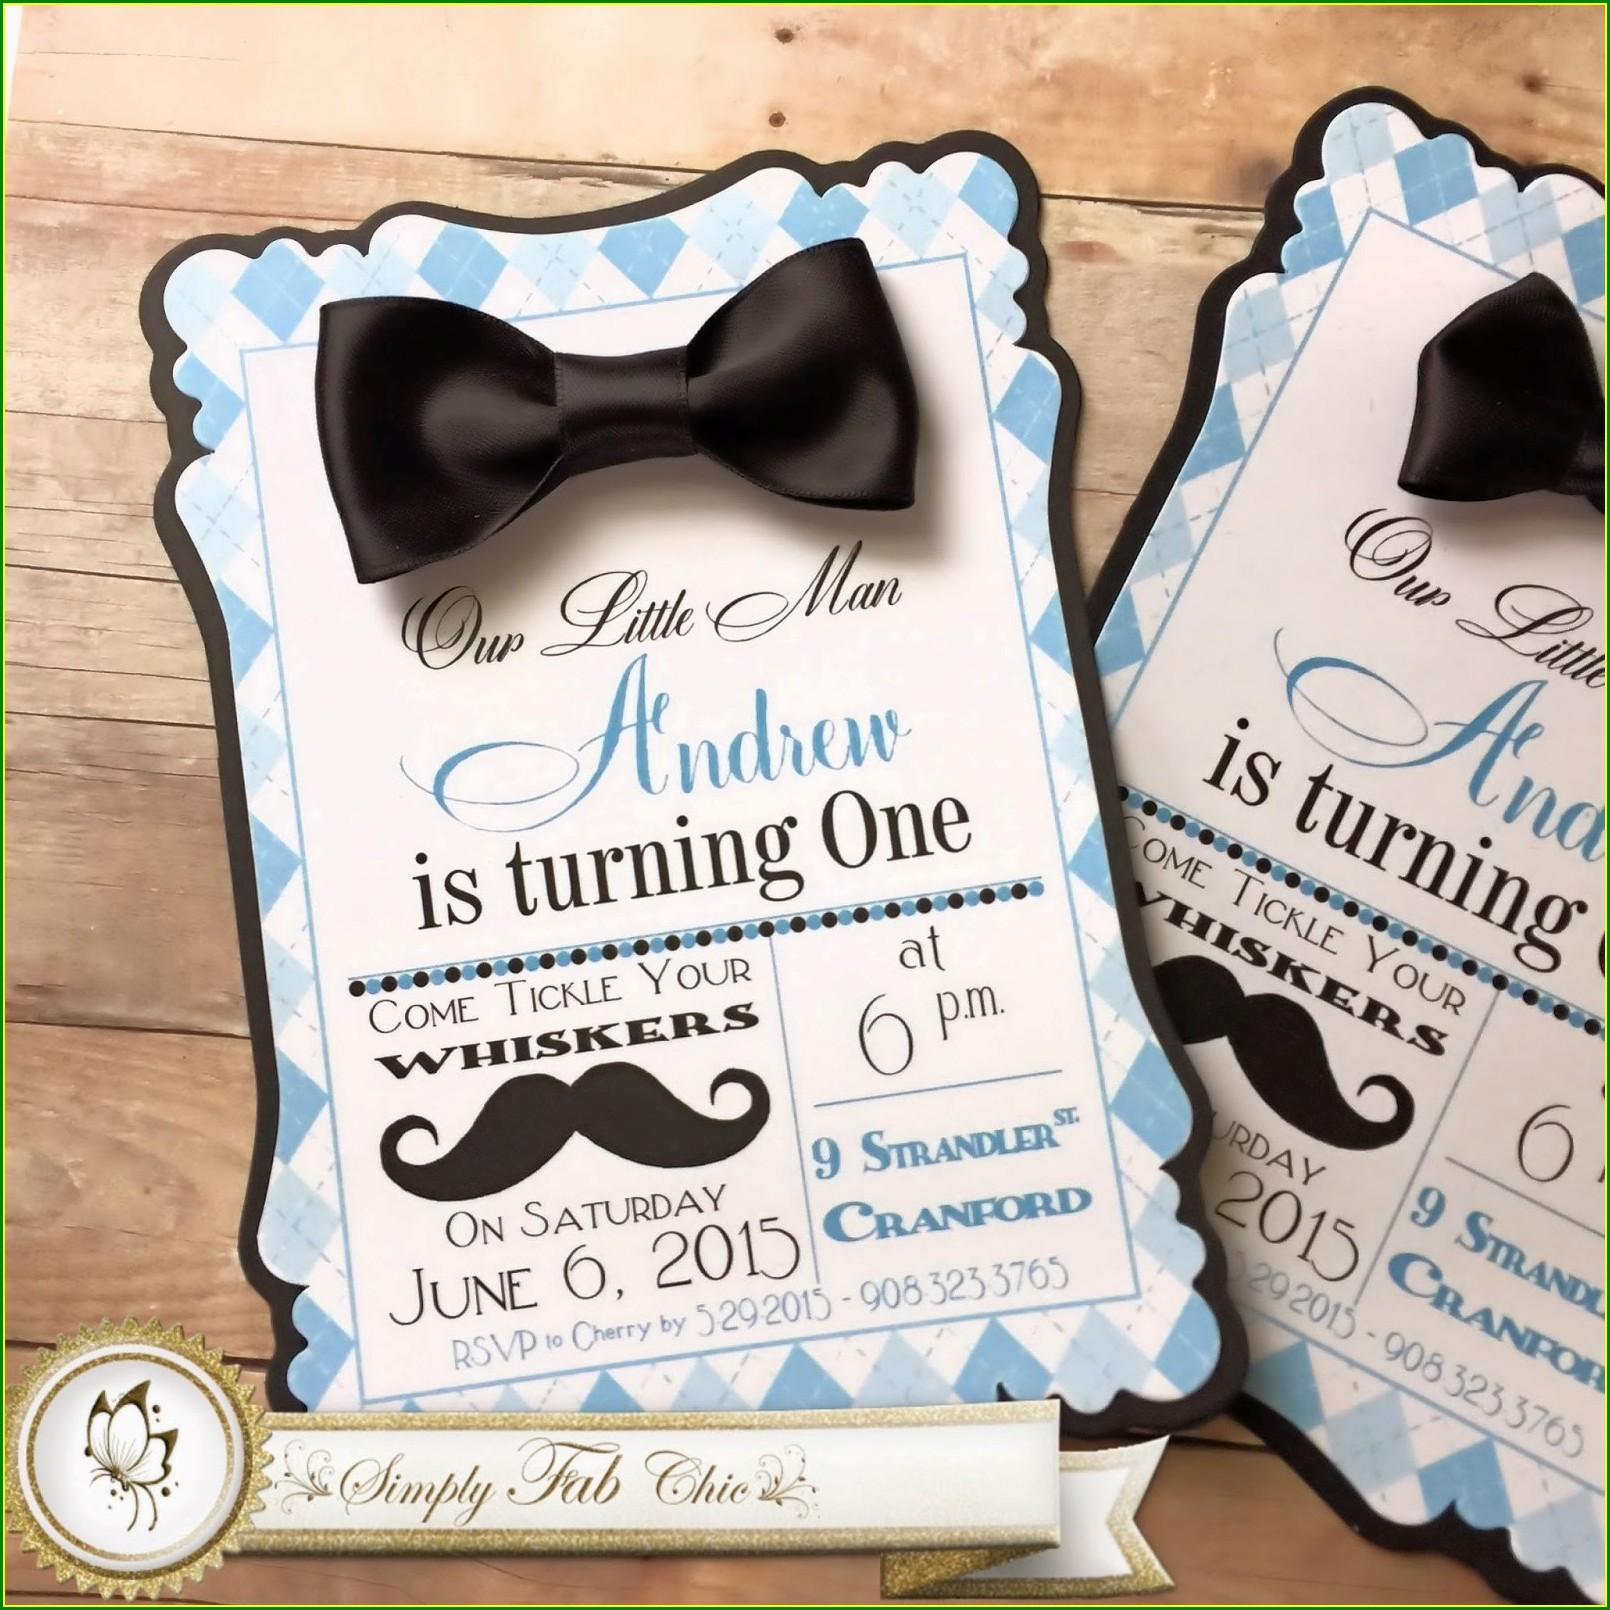 Best Man Invitation Template